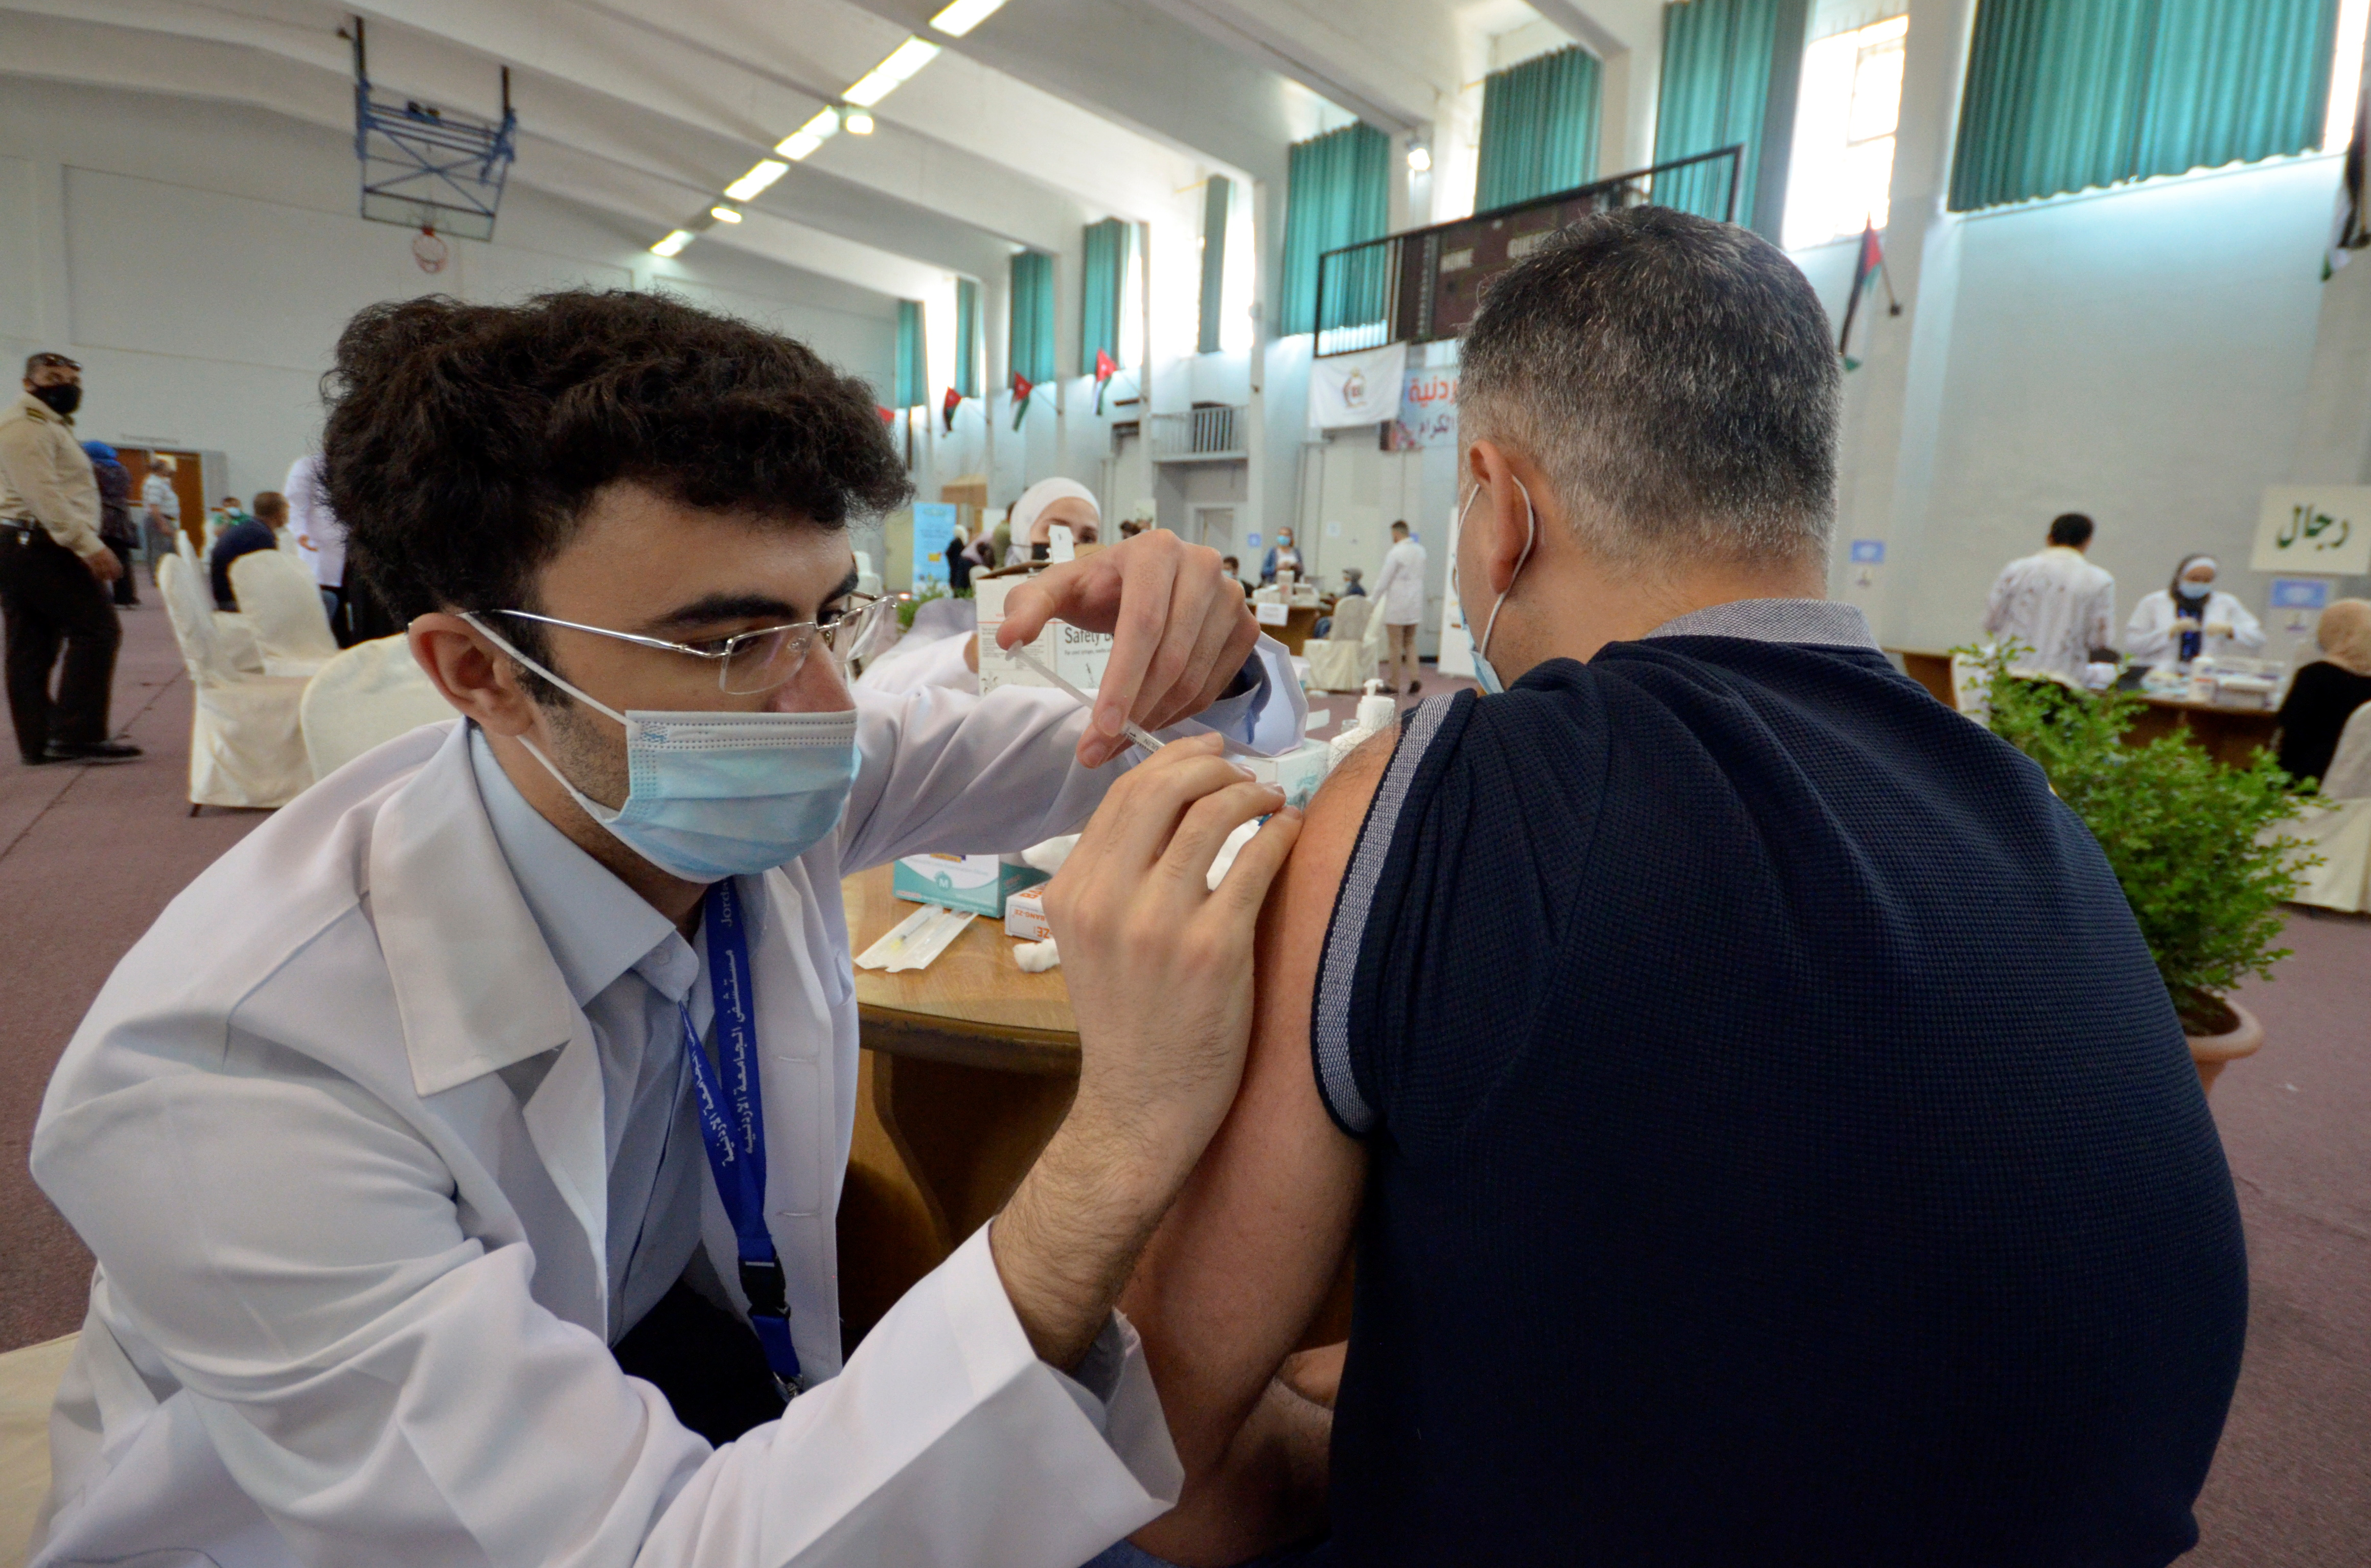 A medical worker administers the coronavirus disease (COVID-19) vaccine to a man in Amman, Jordan, May 3, 2021. Picture taken May 3, 2021. REUTERS/Muath Freij/Files